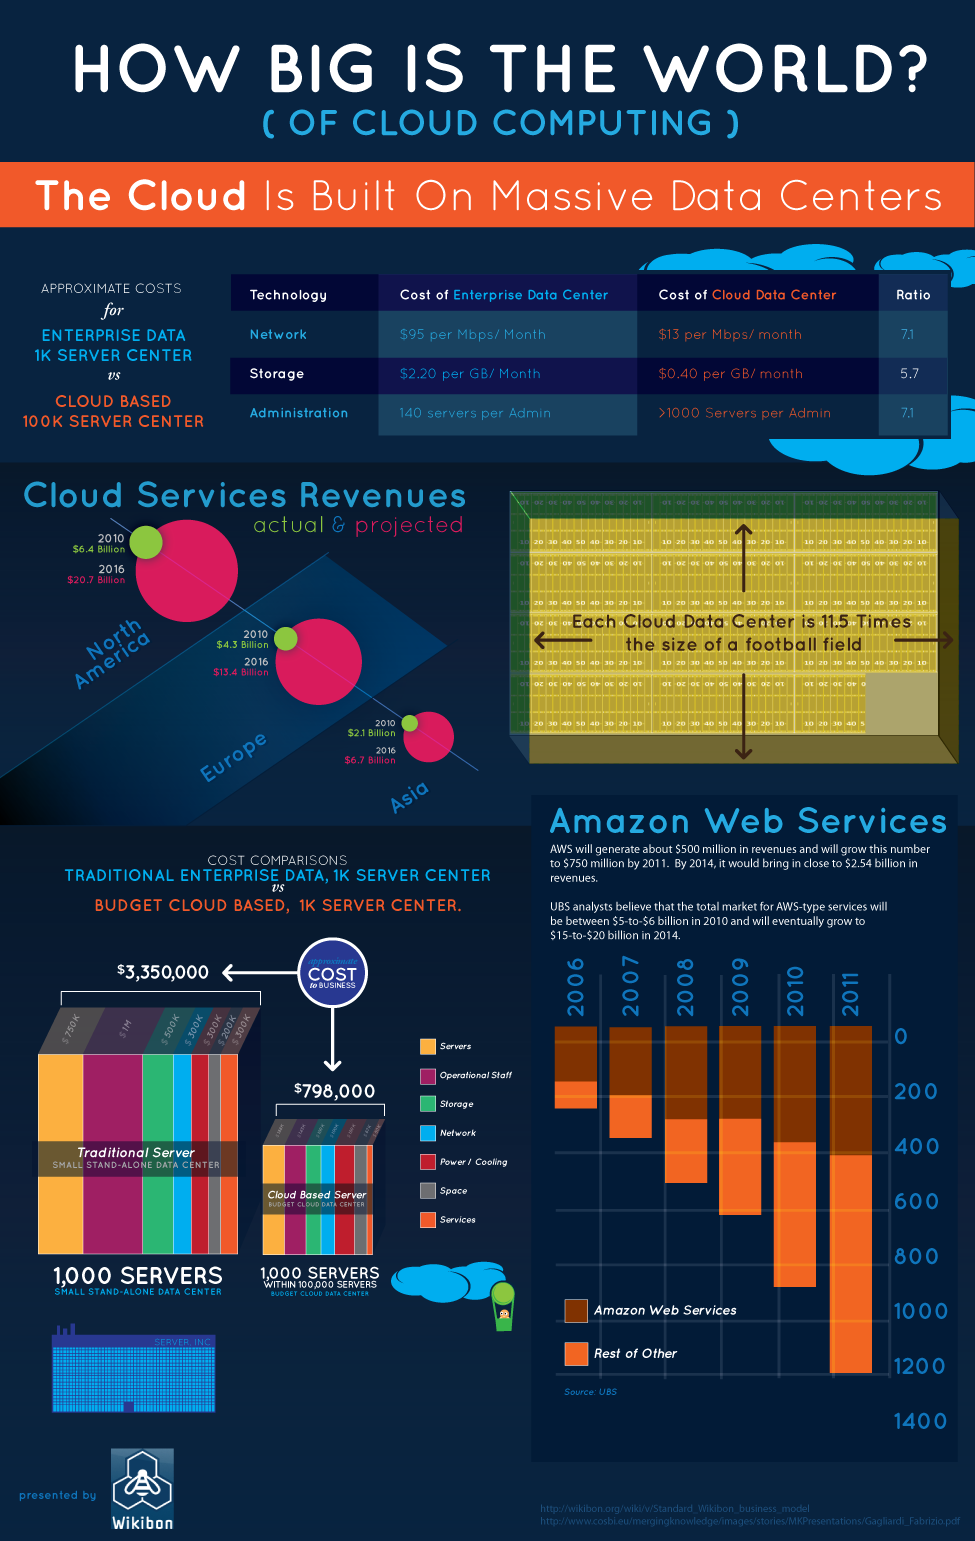 Infographic: How Big Is The World Of Cloud Computing?